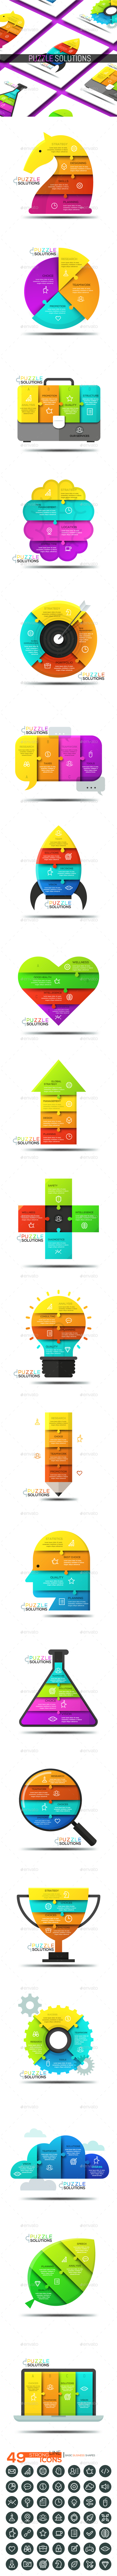 Puzzle Solutions - Infographics